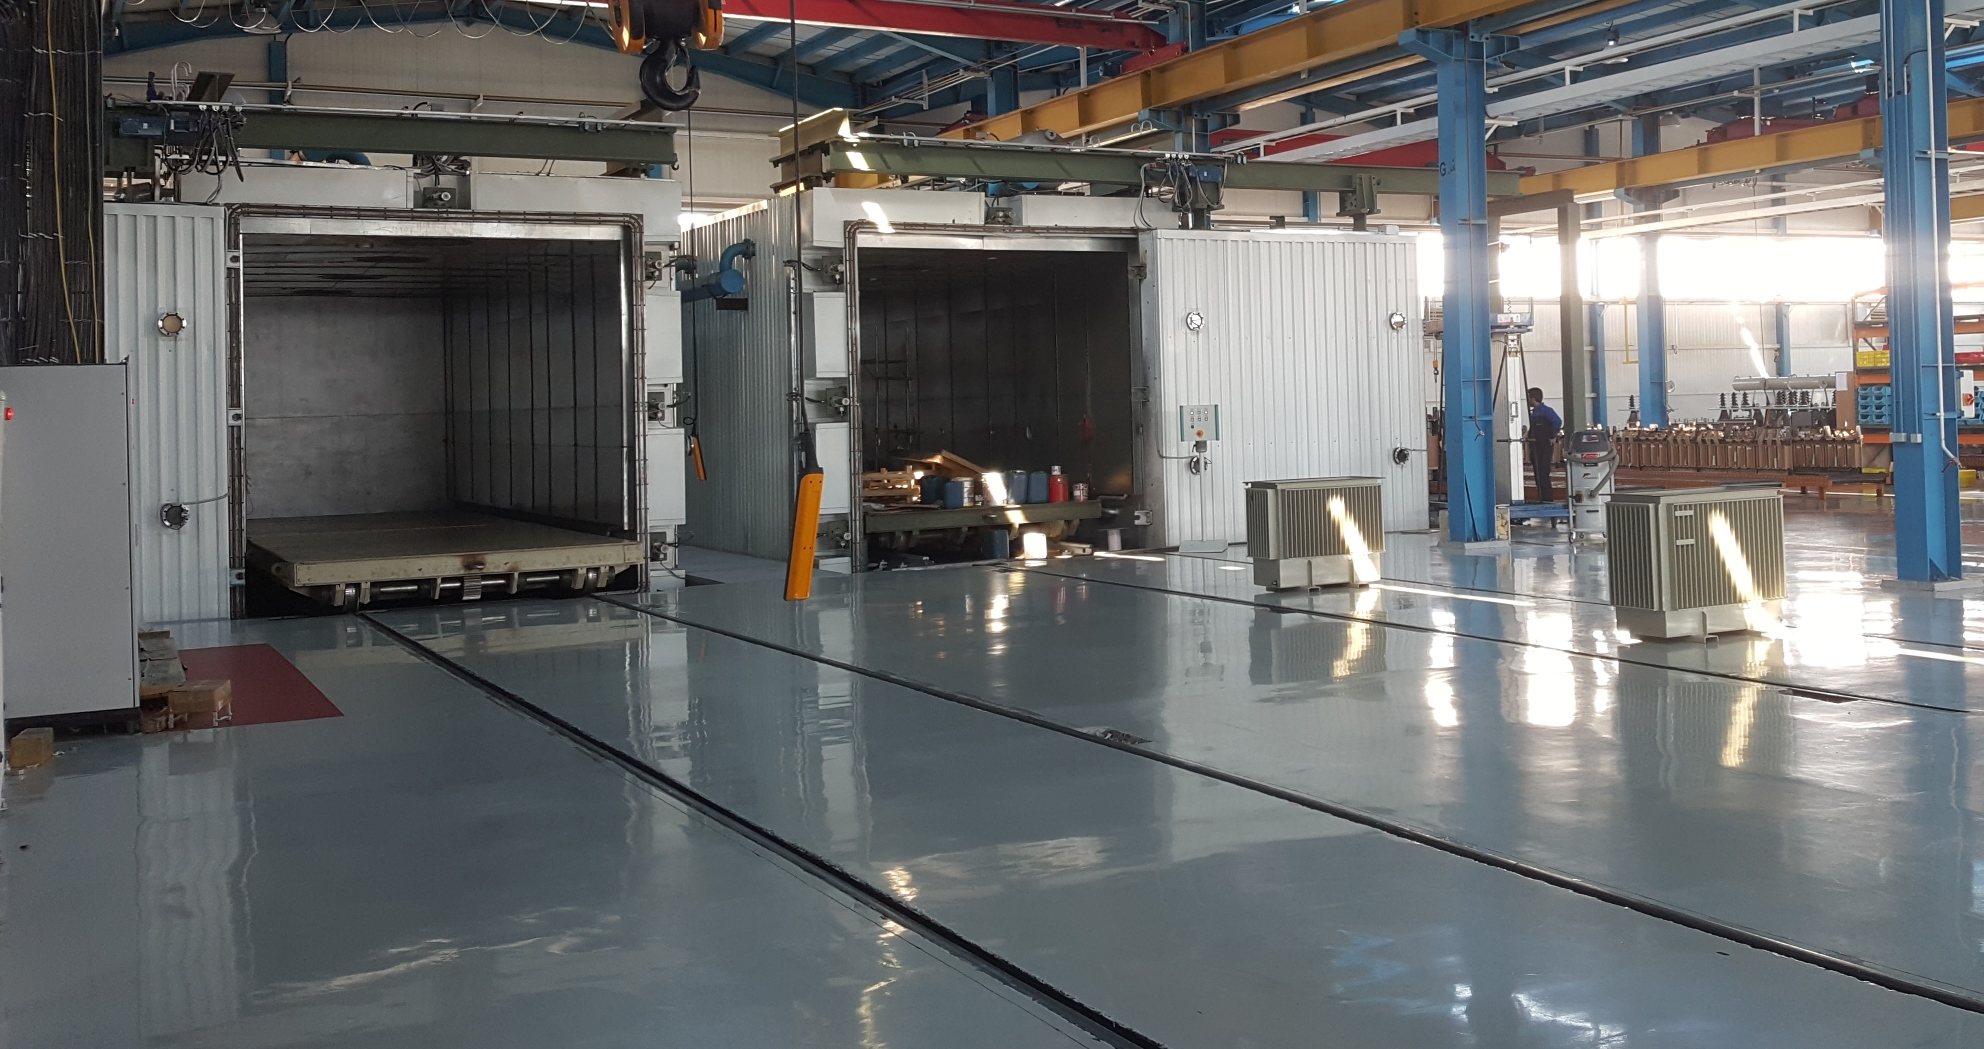 Hering transformer vacuum drying oven factory 2